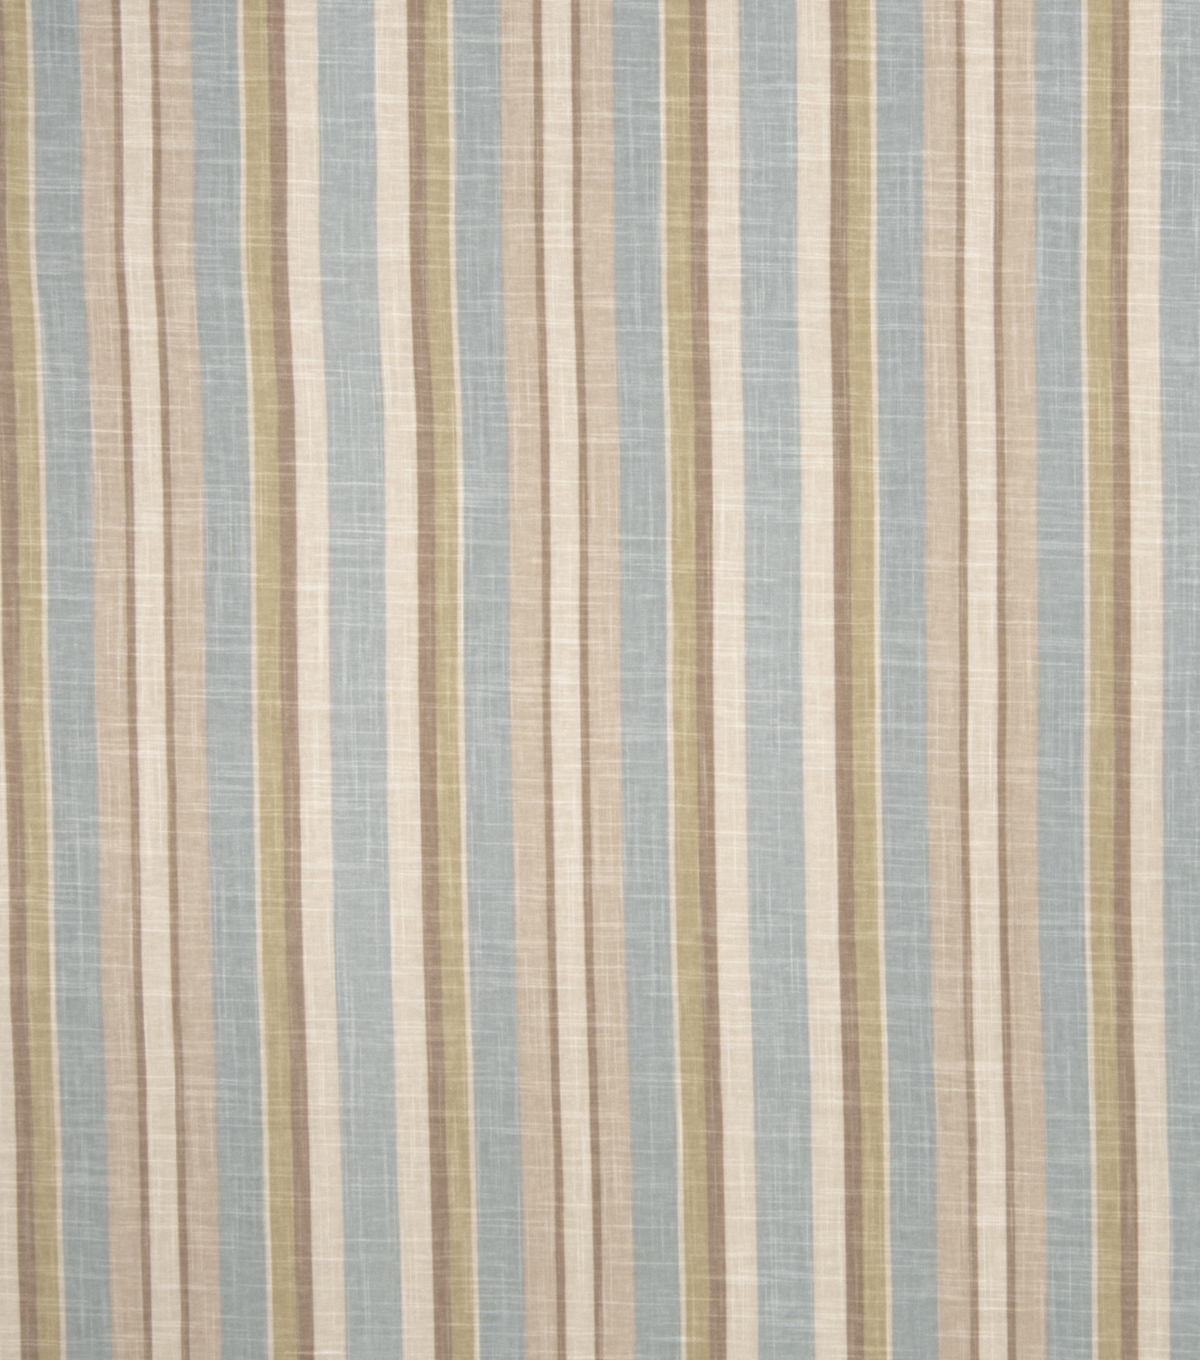 Home Decor 8\u0022x8\u0022 Fabric Swatch-Jaclyn Smith Freeman  Robins Egg